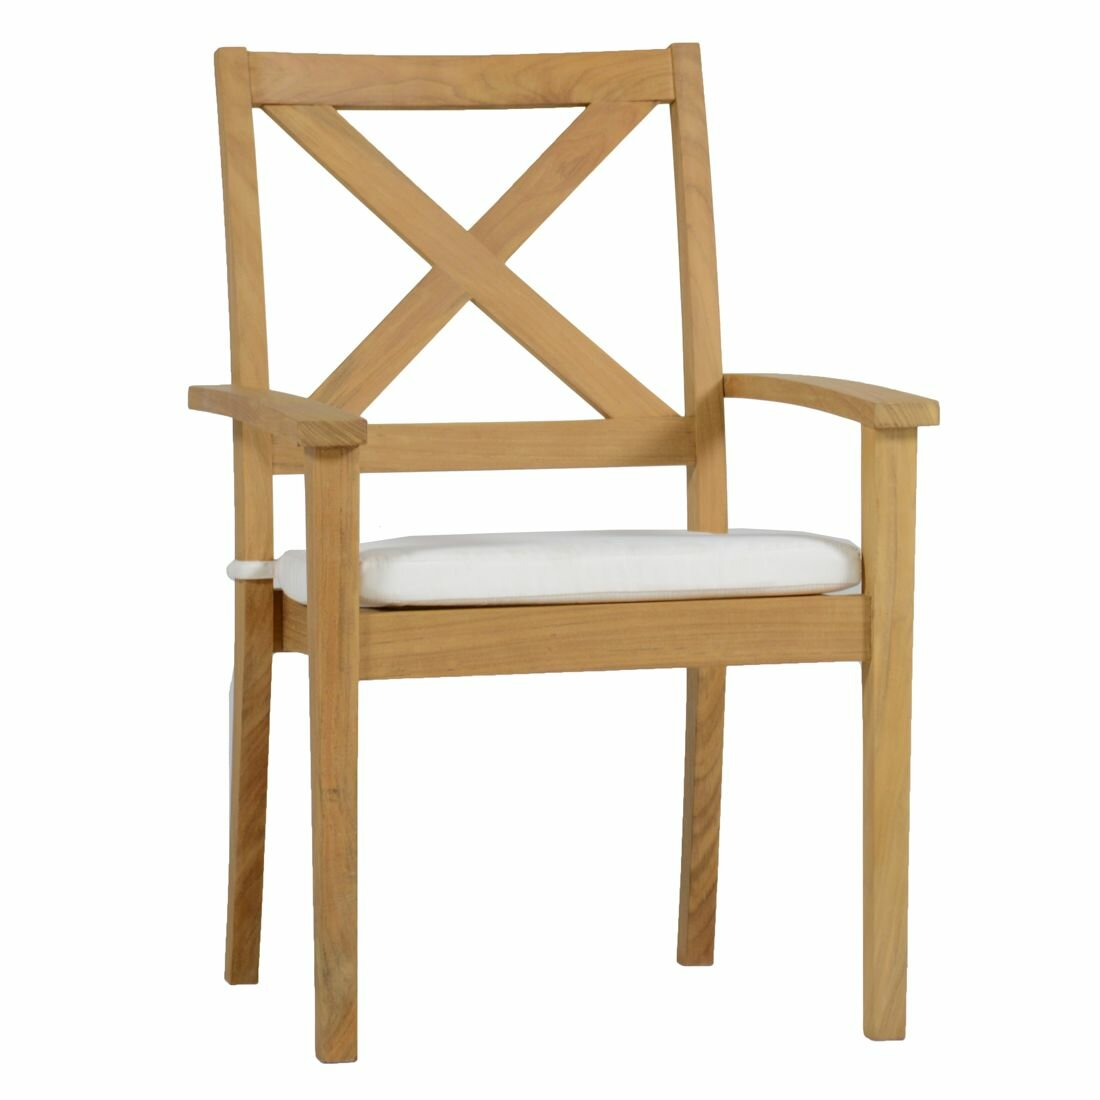 x back dining chairs. summer classics drake x back teak stacking patio dining chair with cushion | wayfair chairs a